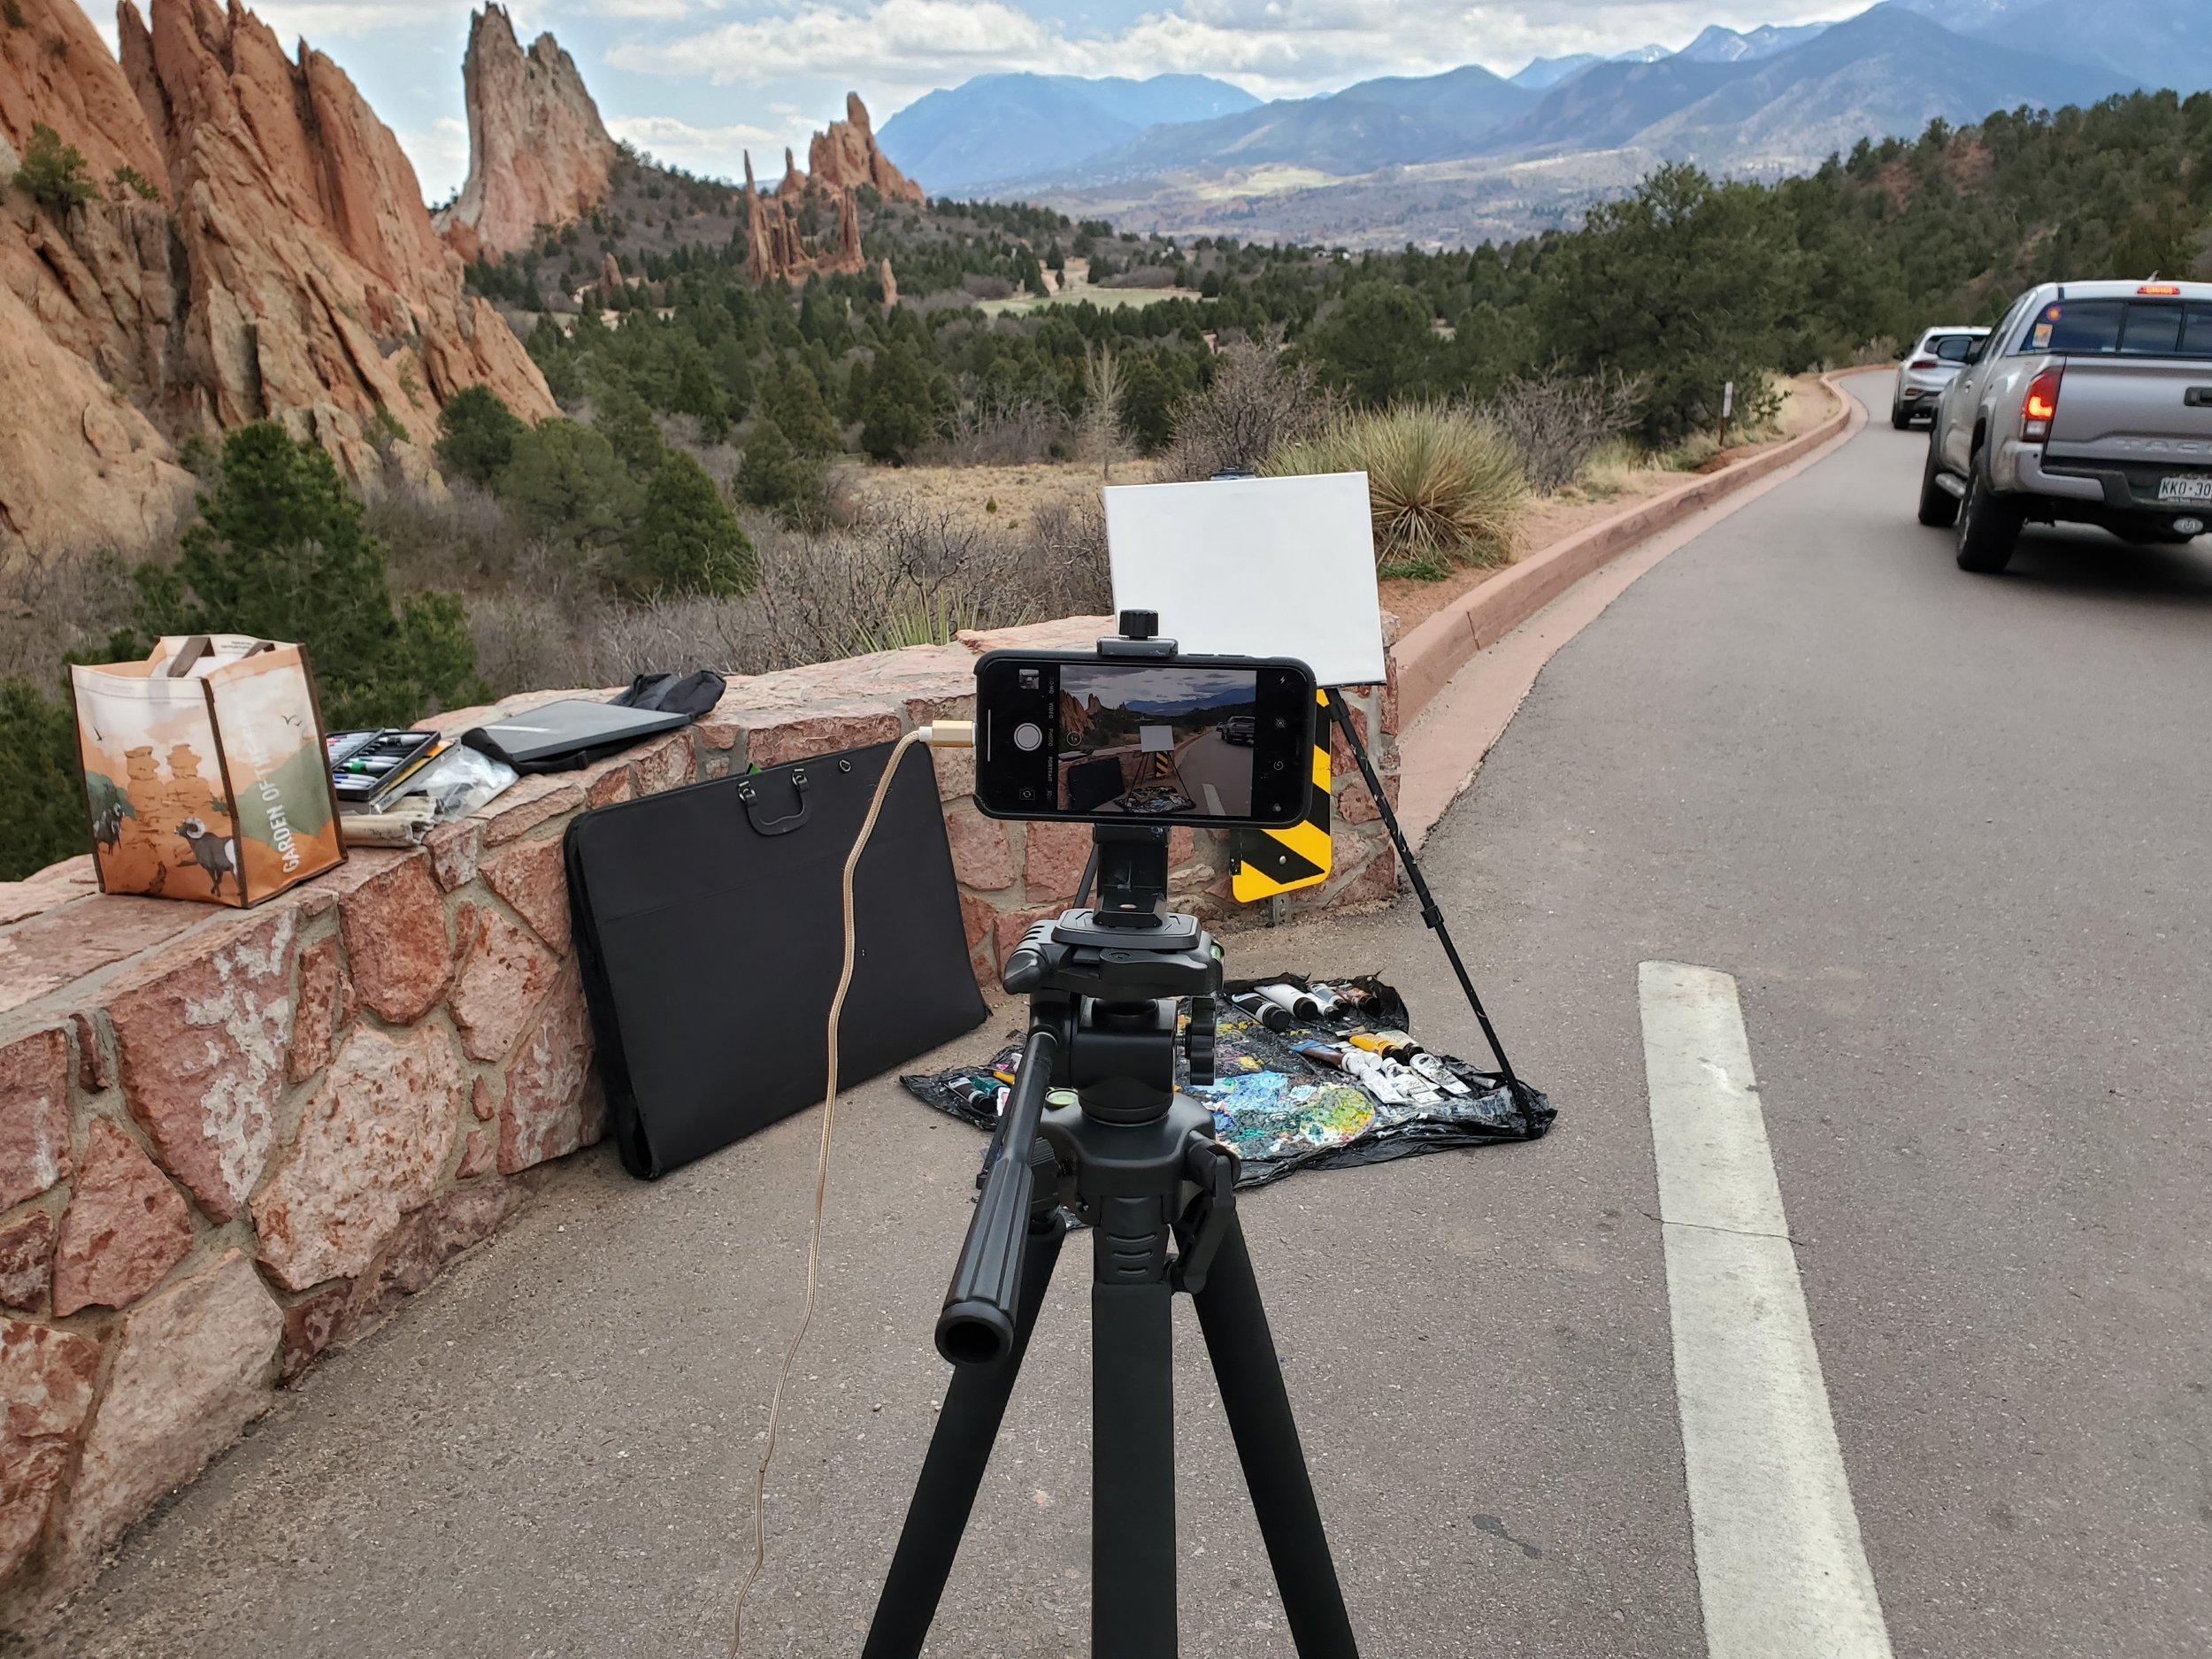 My display art project live painting setup at the view point of Garden of the Gods.